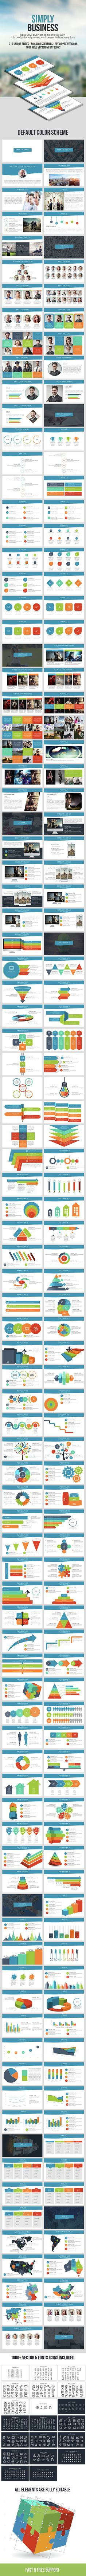 Simply Business Powerpoint Presentation Template - Business PowerPoint Templates